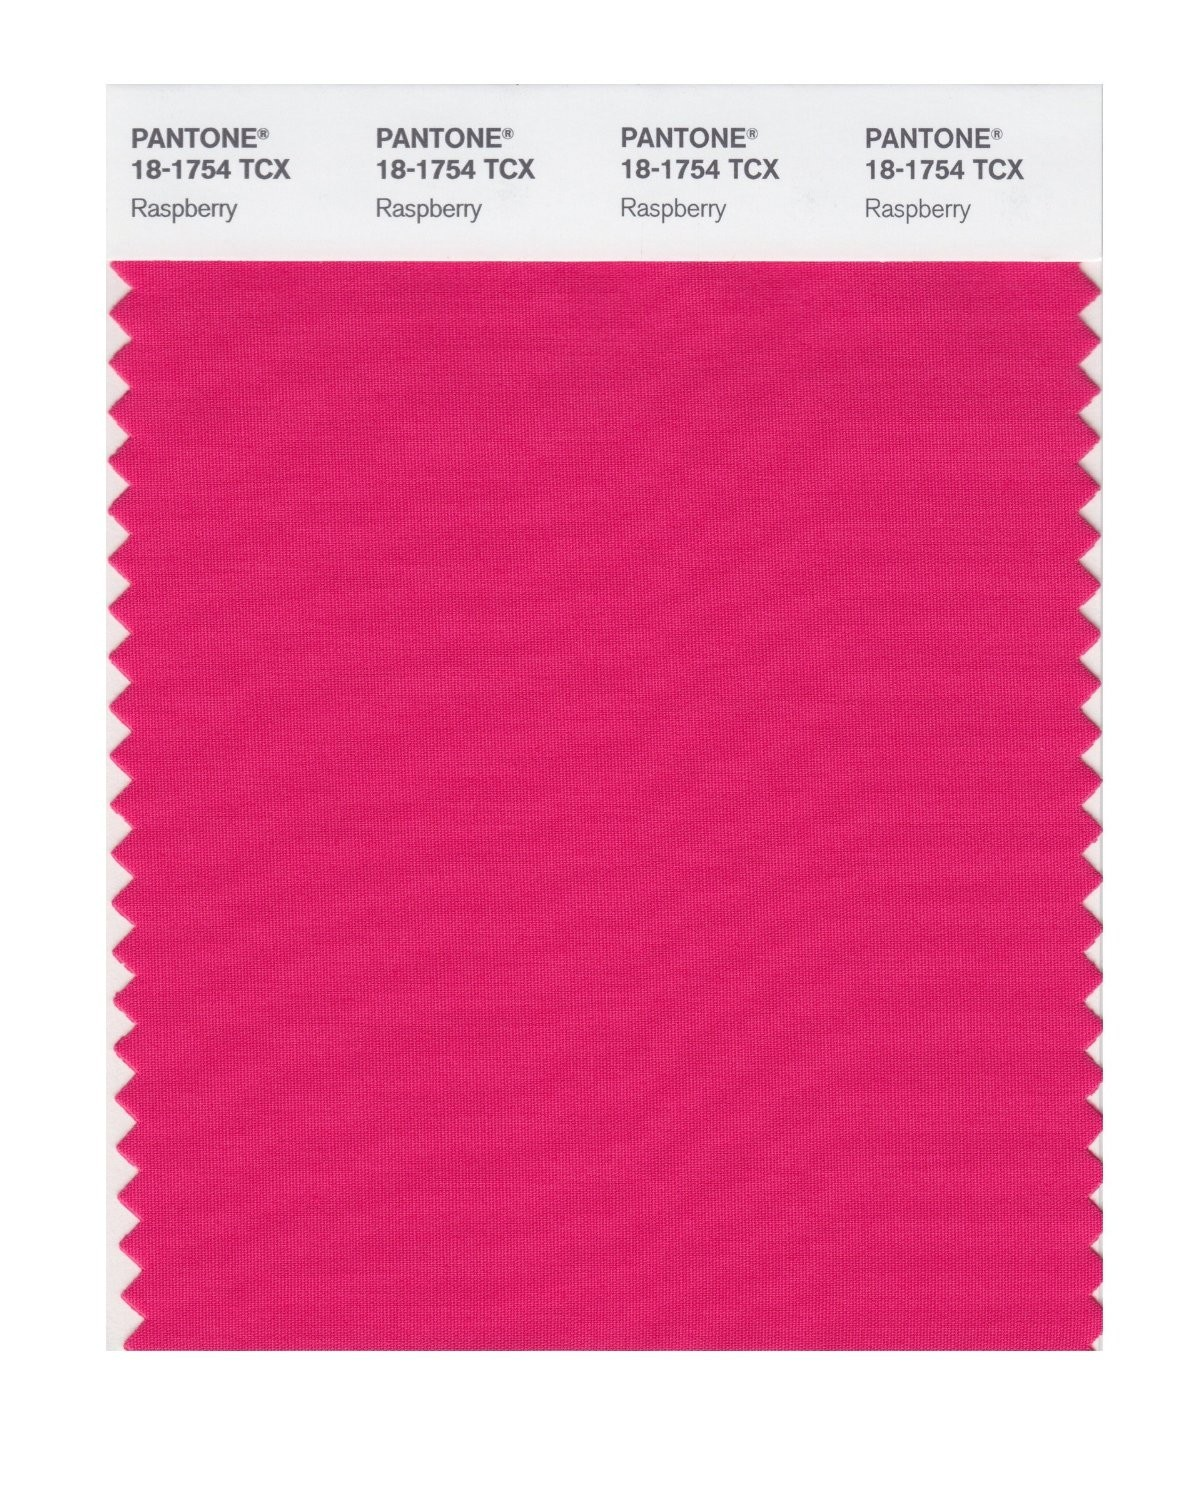 Pantone 18-1754 TCX Swatch Card Raspberry